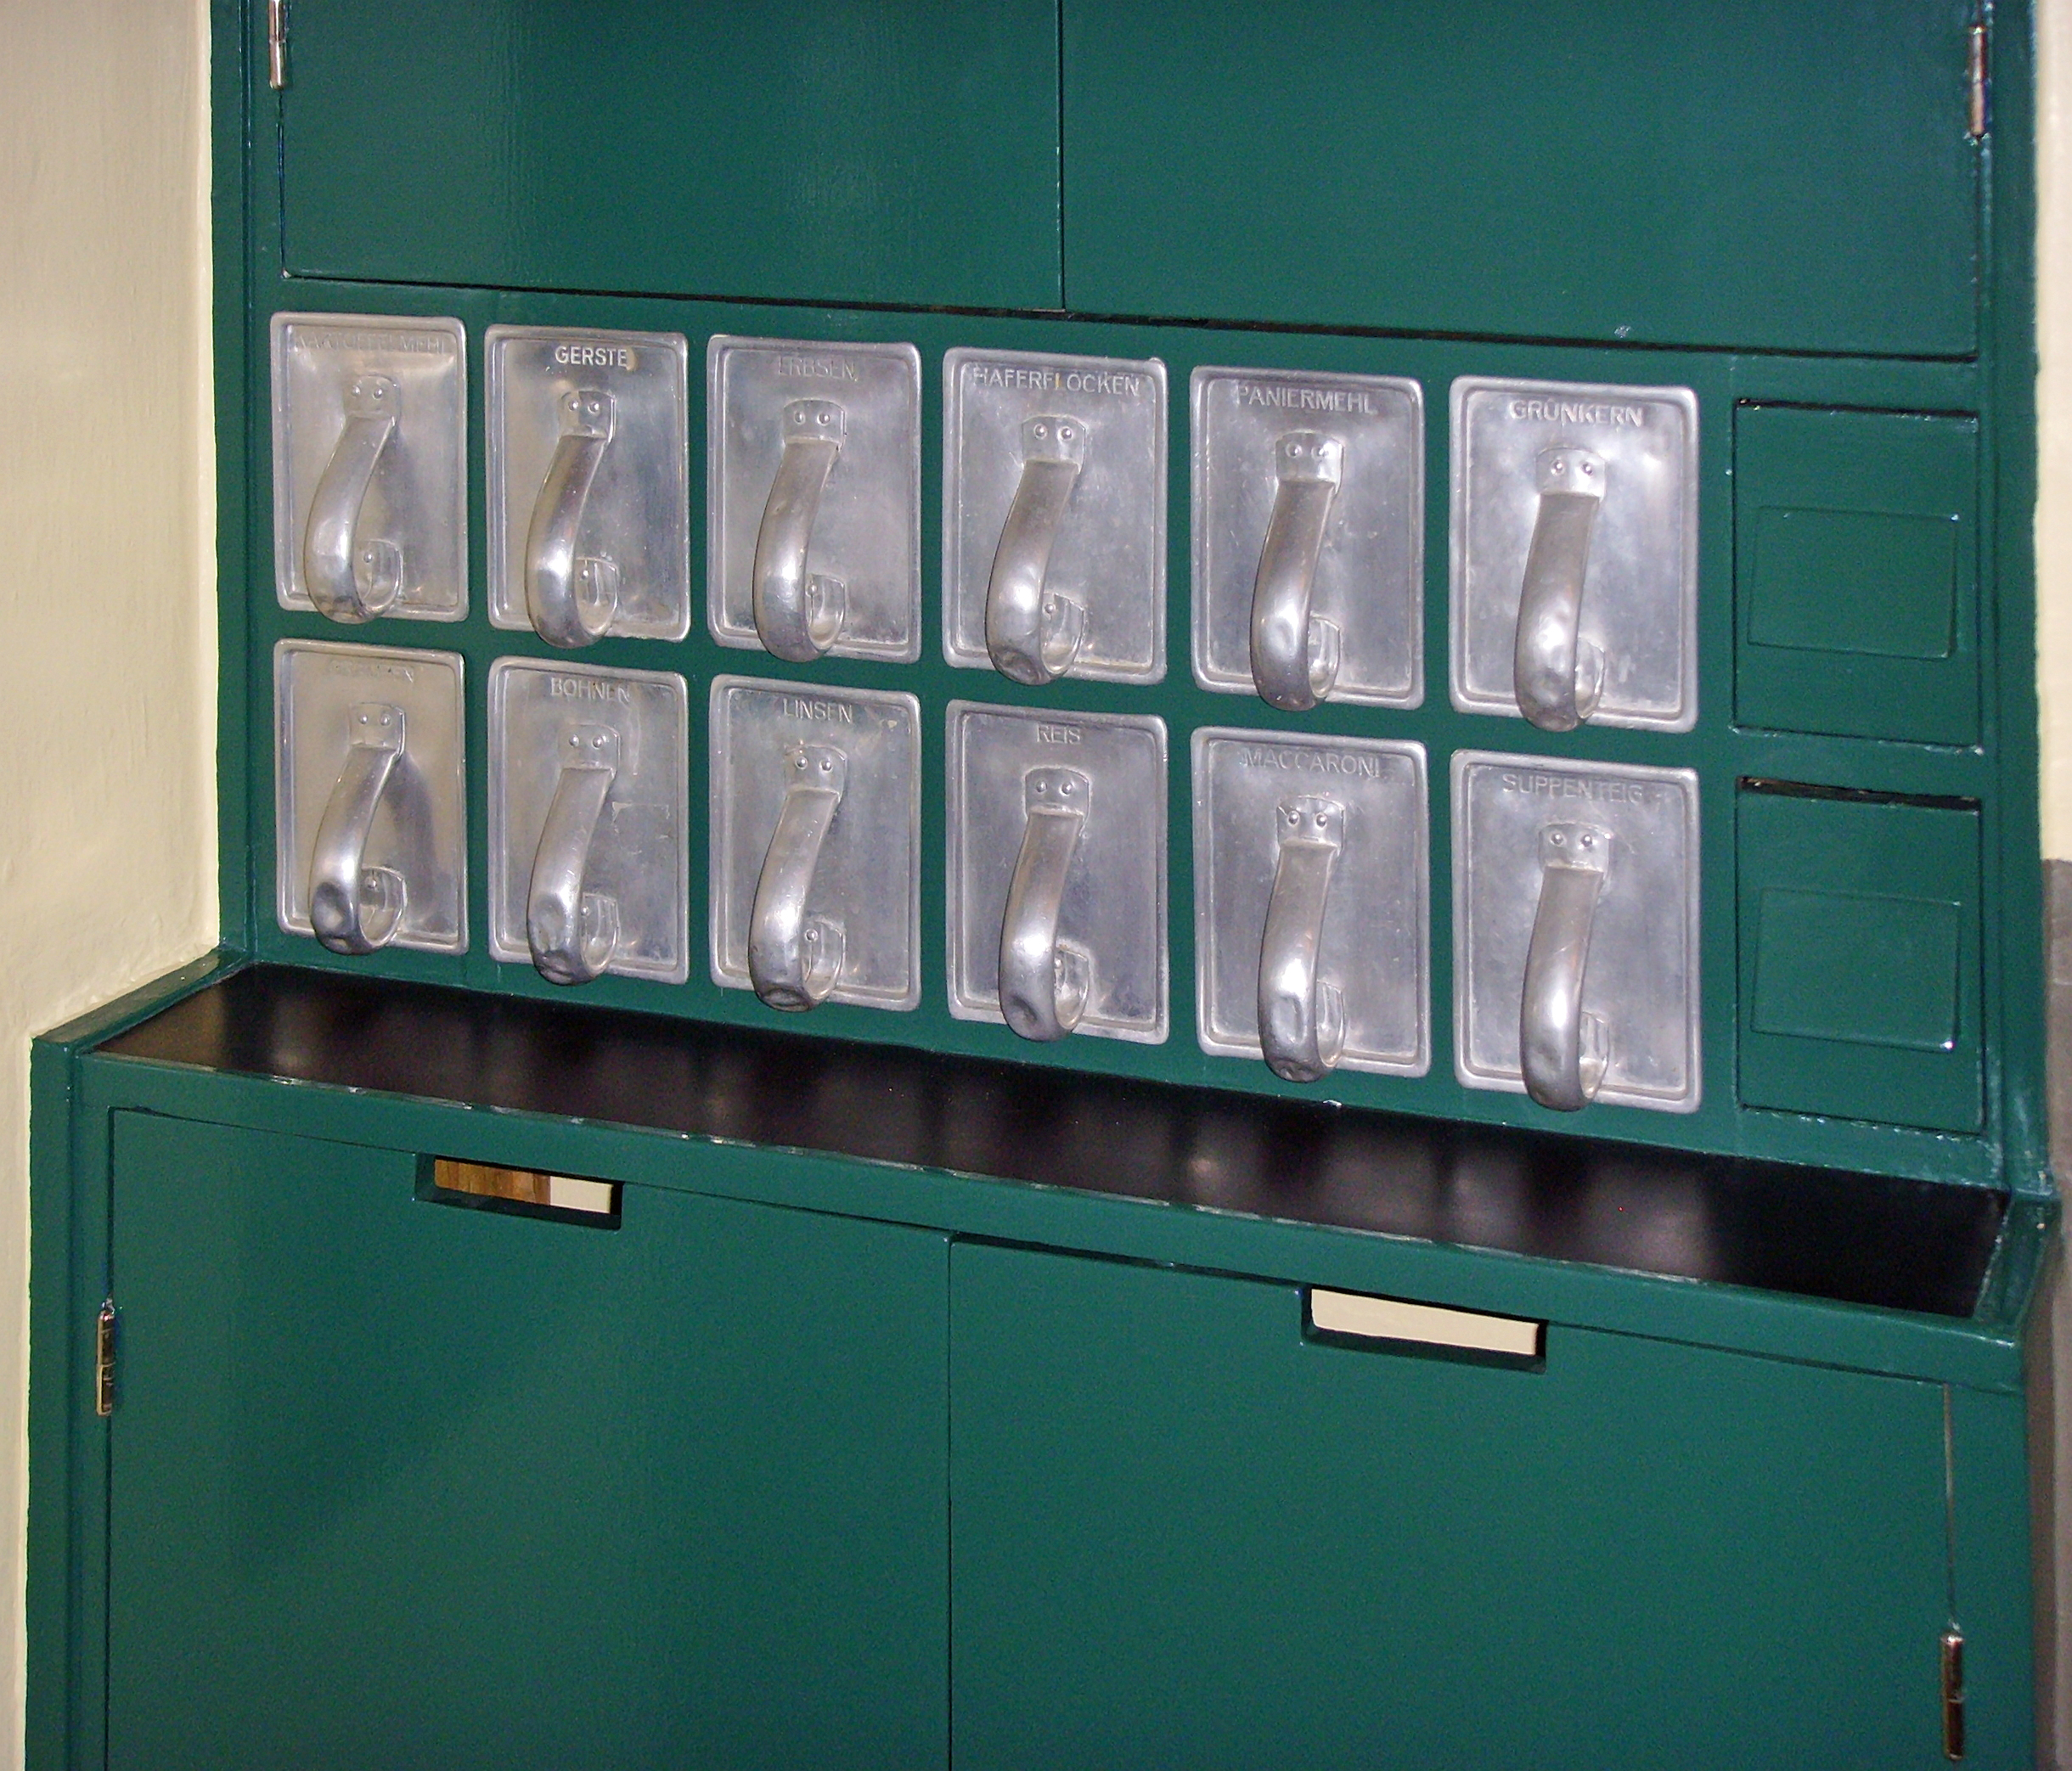 File:Frankfurt-Kitchen, Drawers (3).jpg - Wikimedia Commons